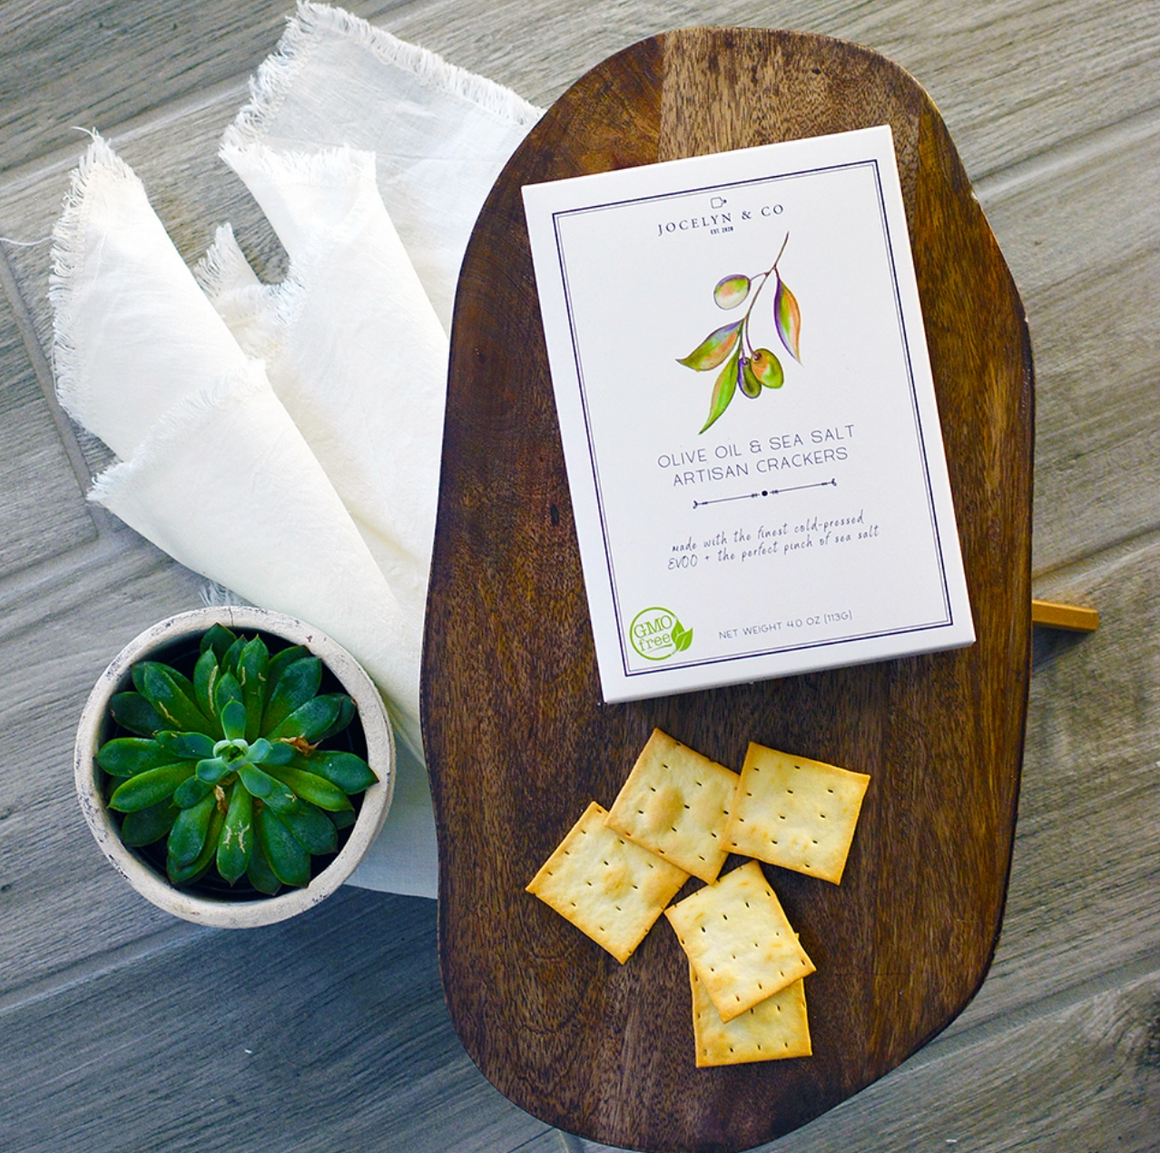 Olive Oil & Sea Salt Artisan Crackers